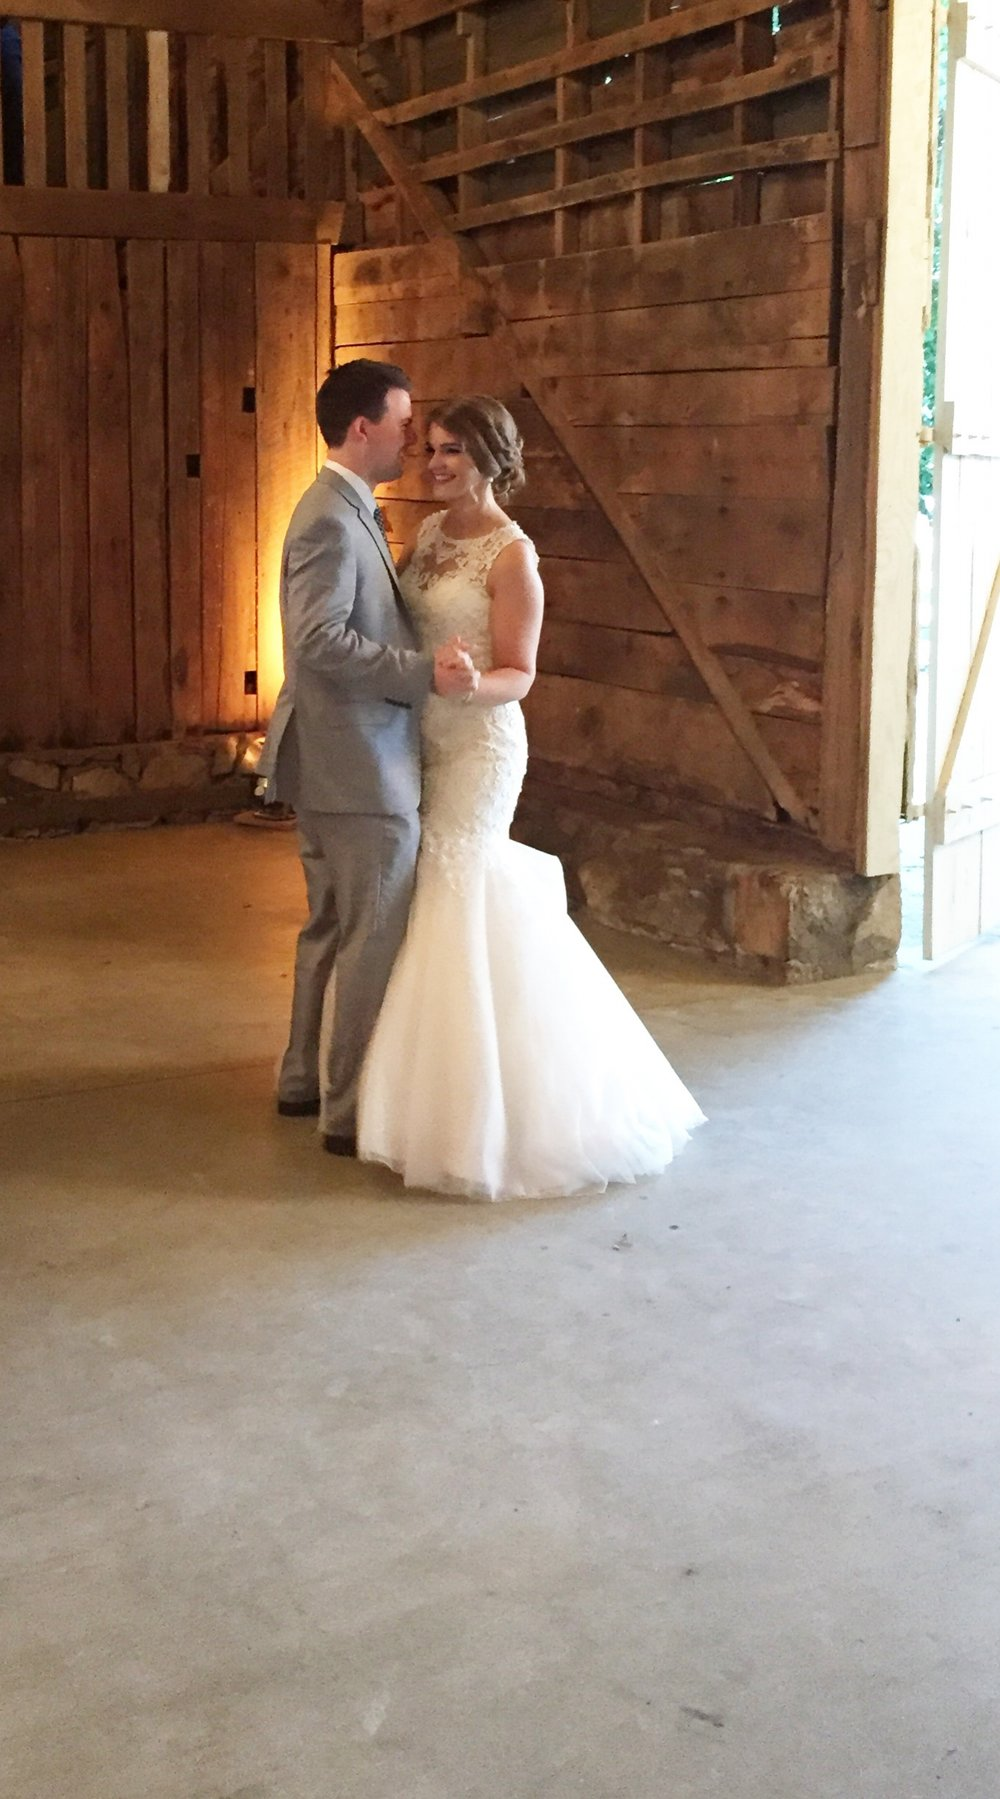 Sarah and Ryan tied the knot!